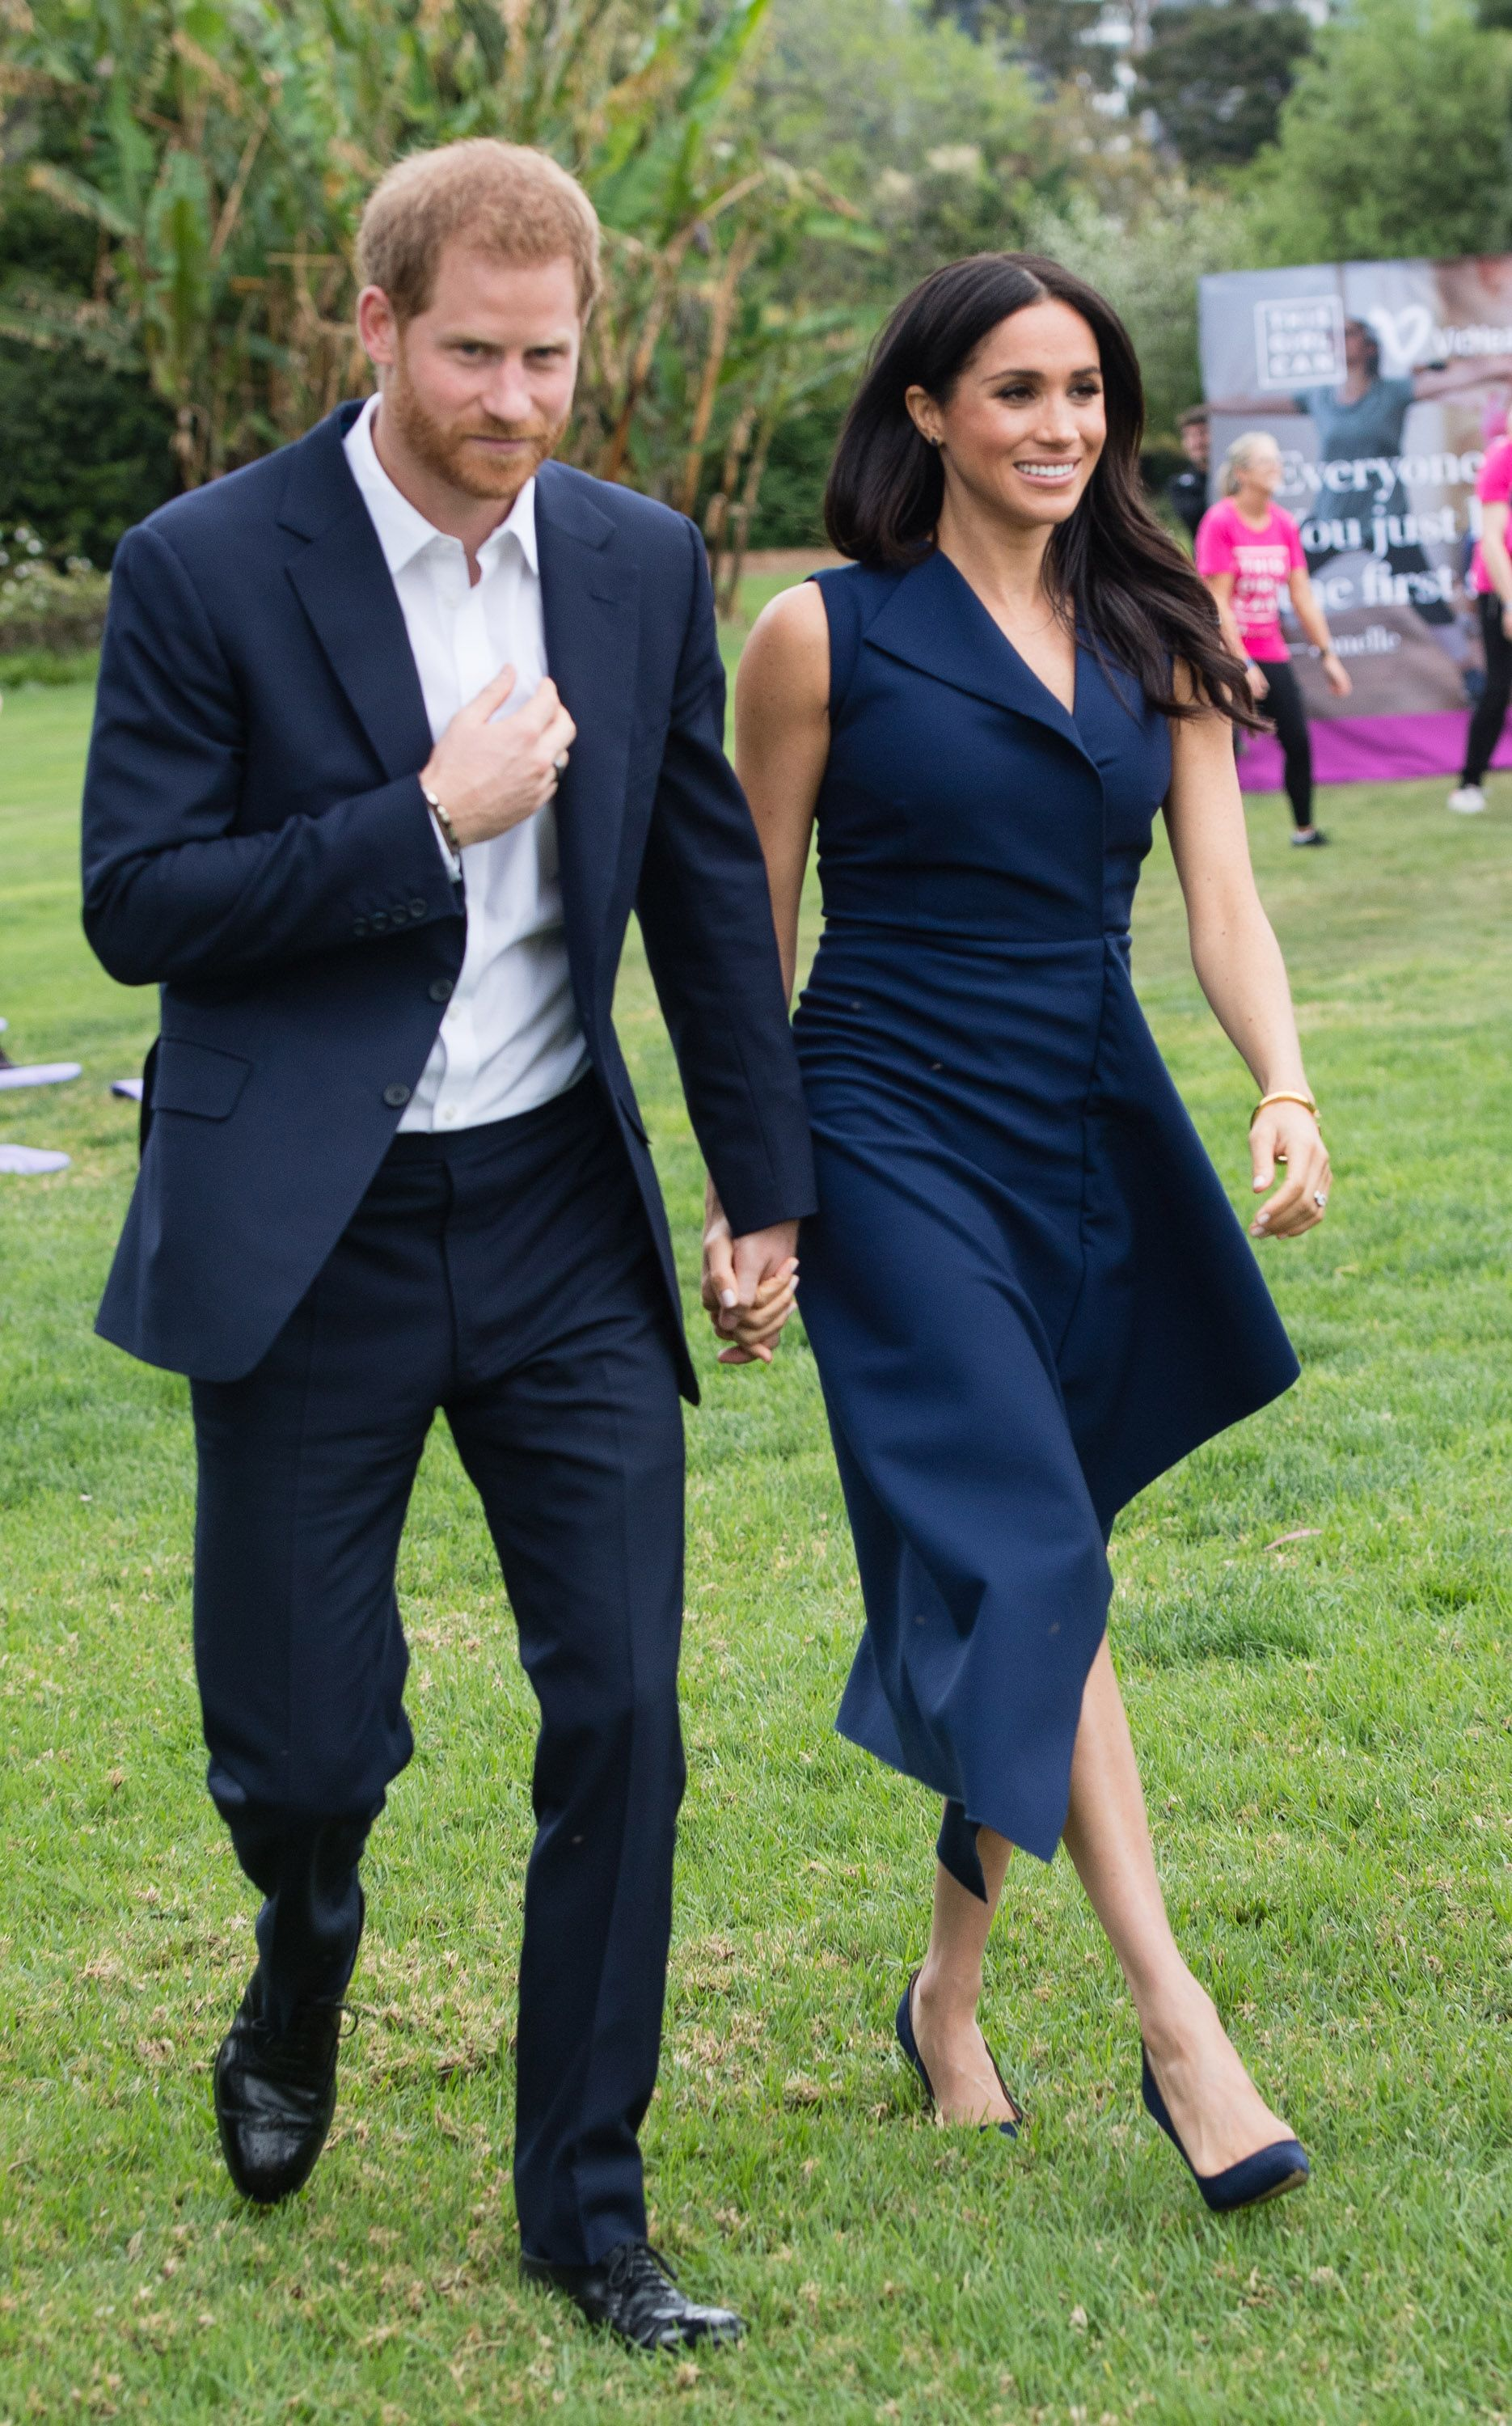 72b021dcab7 100+ Best Meghan Markle Outfits of All Time - Meghan Markle Style Timeline